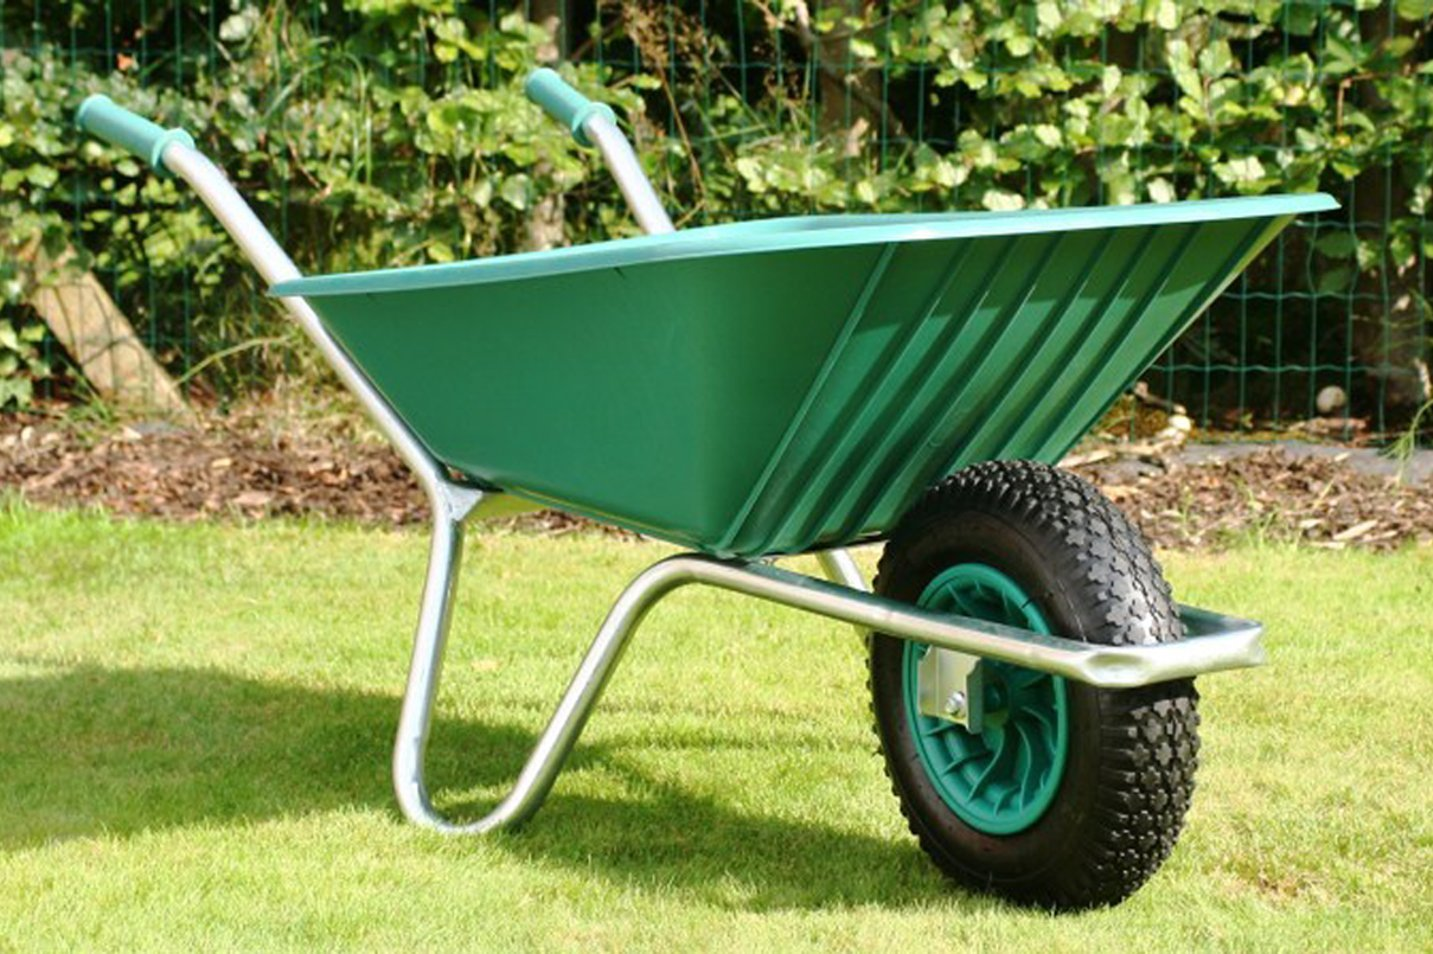 Country Clipper - Best Wheelbarrow